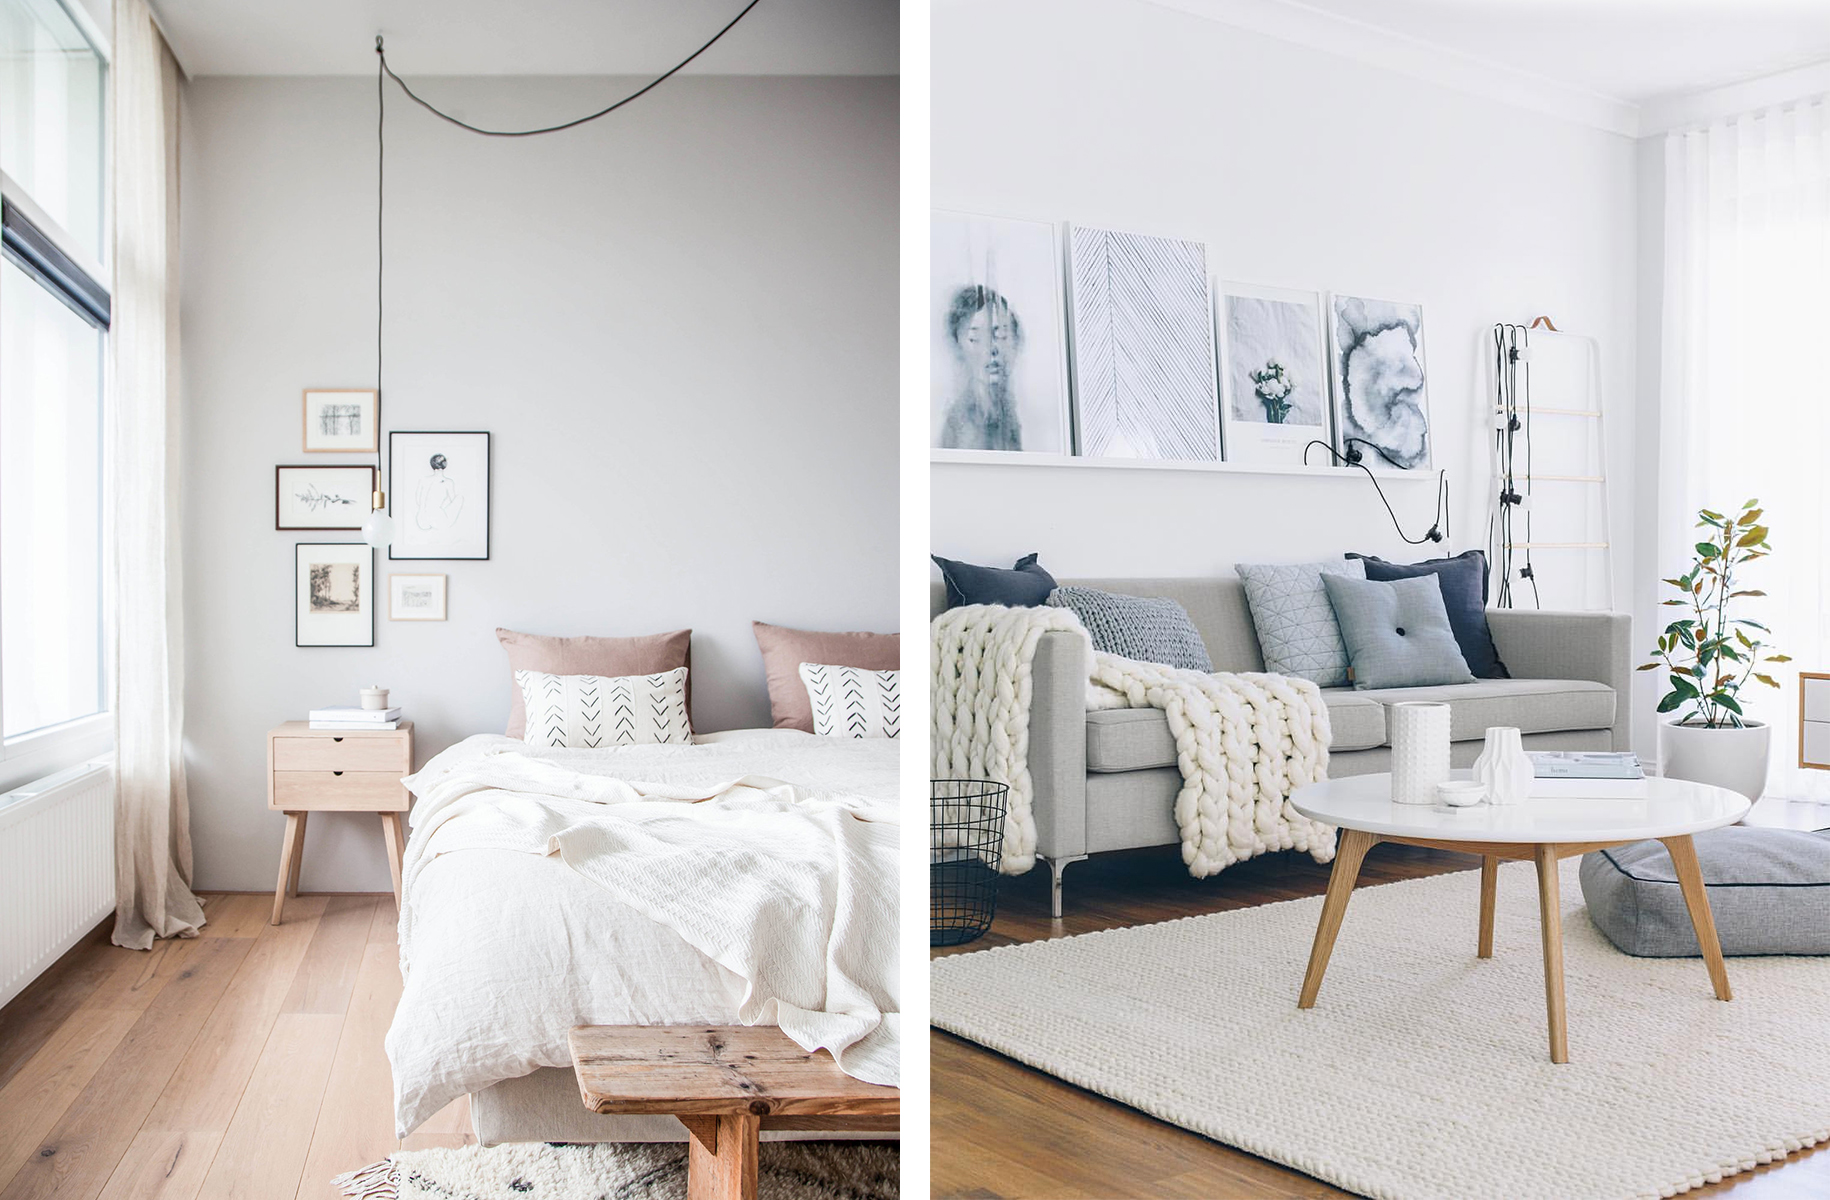 Top 10 tips for adding scandinavian style to your home Scandinavian interior design bedroom